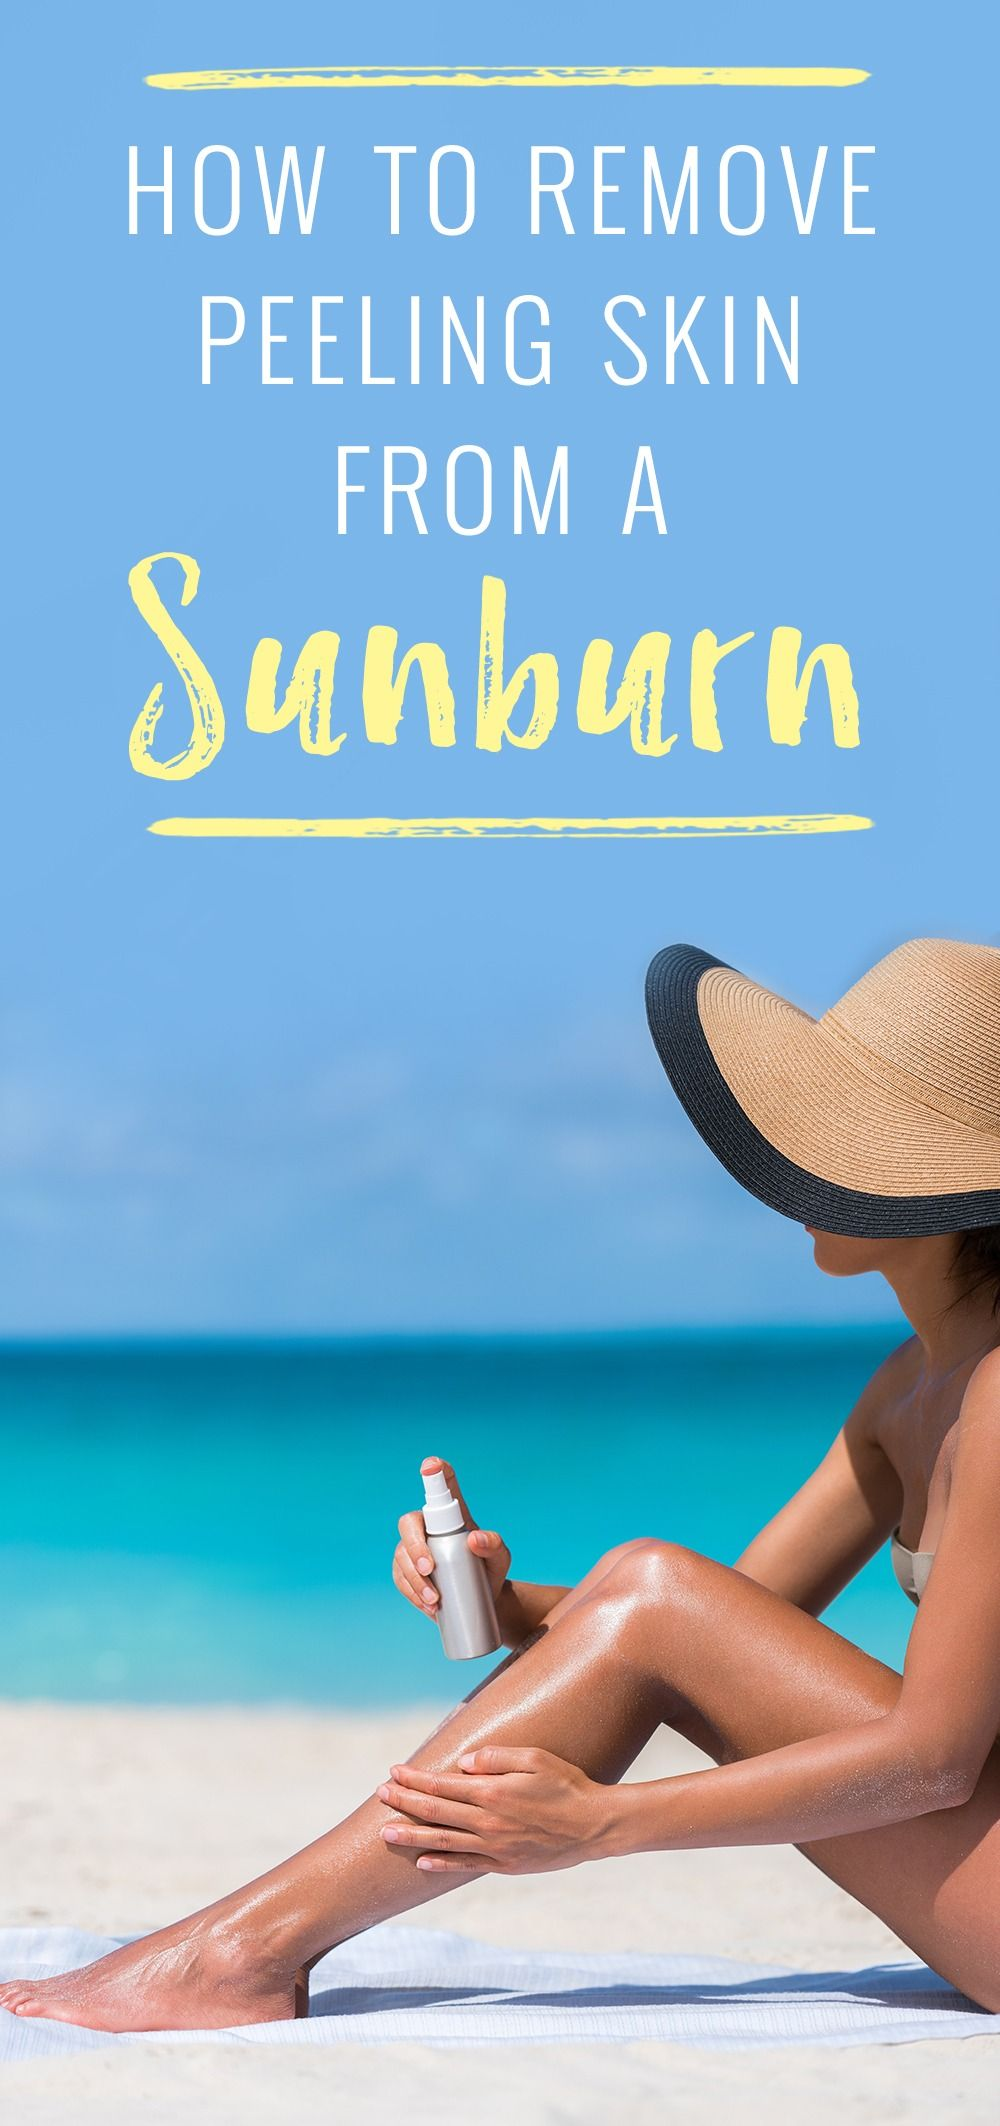 Improperly Removed Sunburned Skin Can Lead To Further Irritation Scarring And Infection You Can Properly Remov Sunburn Skin Peeling Sunburn Skin Peeling Skin